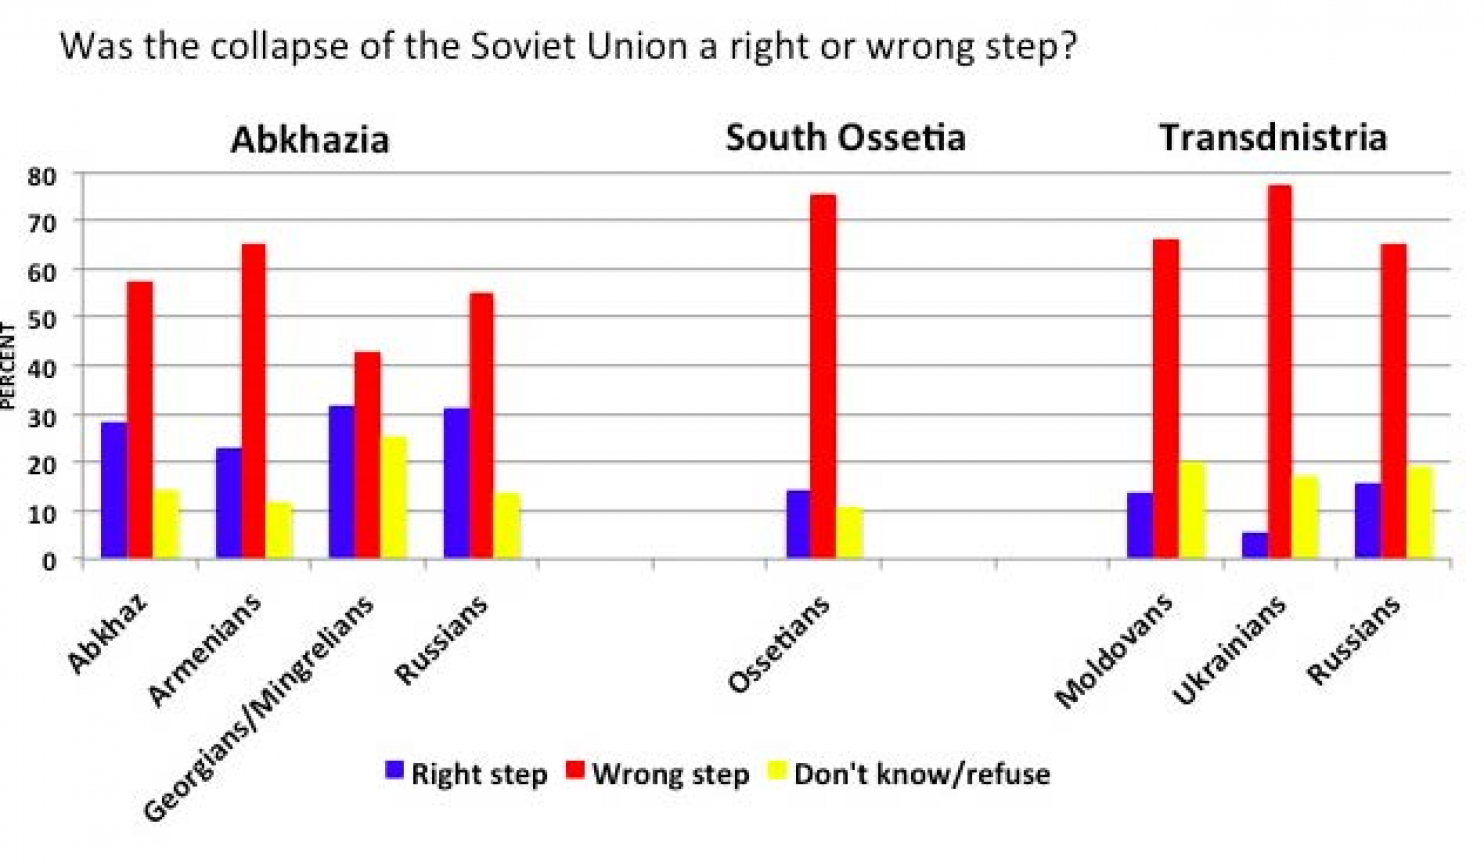 77% of Ukrainians and 65% of Russians regretted the collapse of the USSR